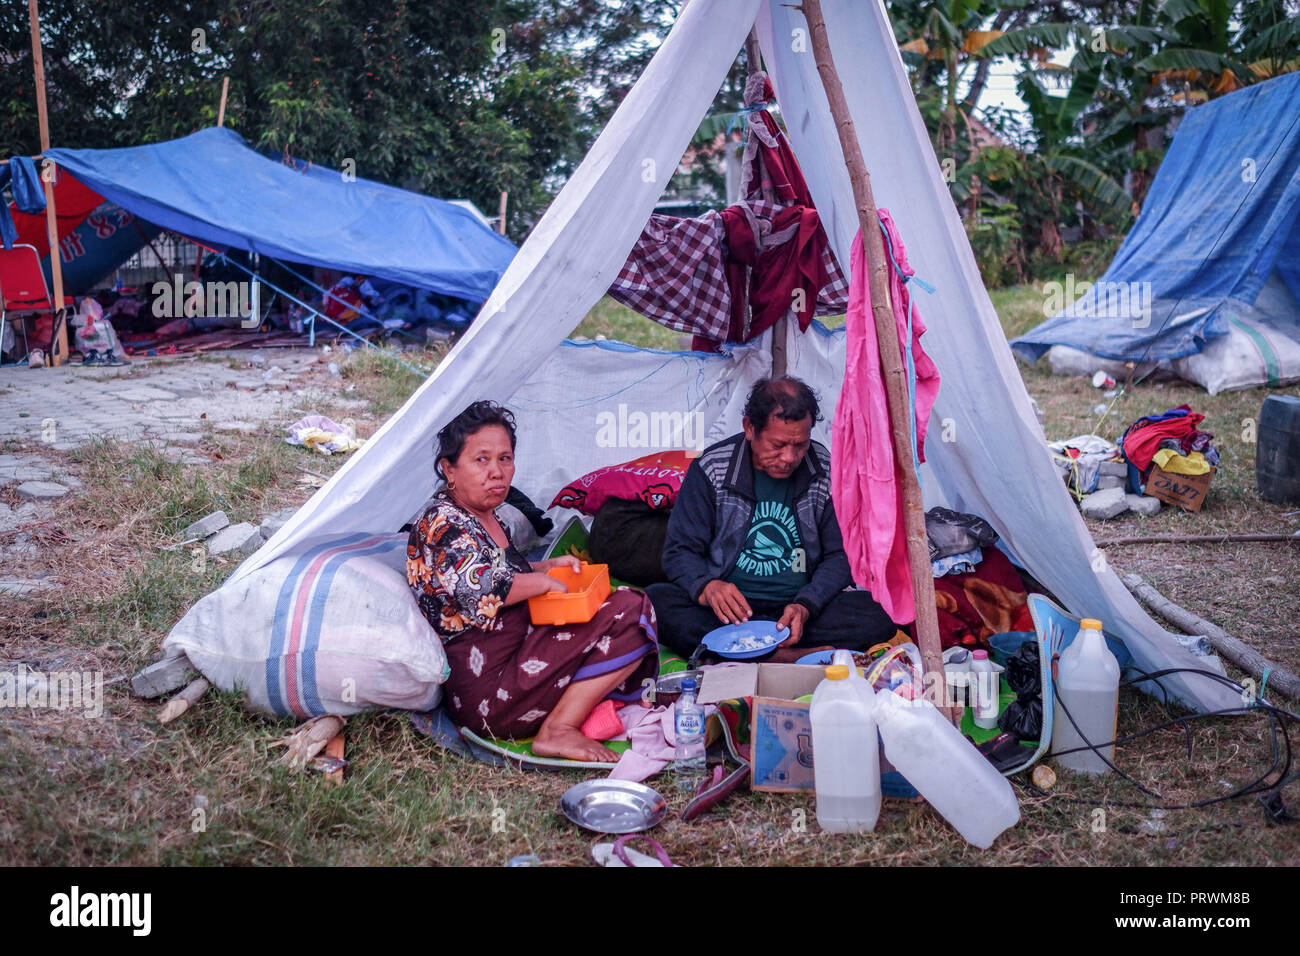 Palu, Indonesia. 13th Oct, 2018. Refugees seen resting in the Lere Refugee settlement.A deadly earthquake measuring 7.7 magnitude and the tsunami wave caused by it has destroyed the city of Palu and much of the area in Central Sulawesi. According to the officials, death toll from devastating quake and tsunami rises to 1,347, around 800 people in hospitals are seriously injured and some 62,000 people have been displaced in 24 camps around the region. Credit: Hariandi Hafid/SOPA Images/ZUMA Wire/Alamy Live News - Stock Image